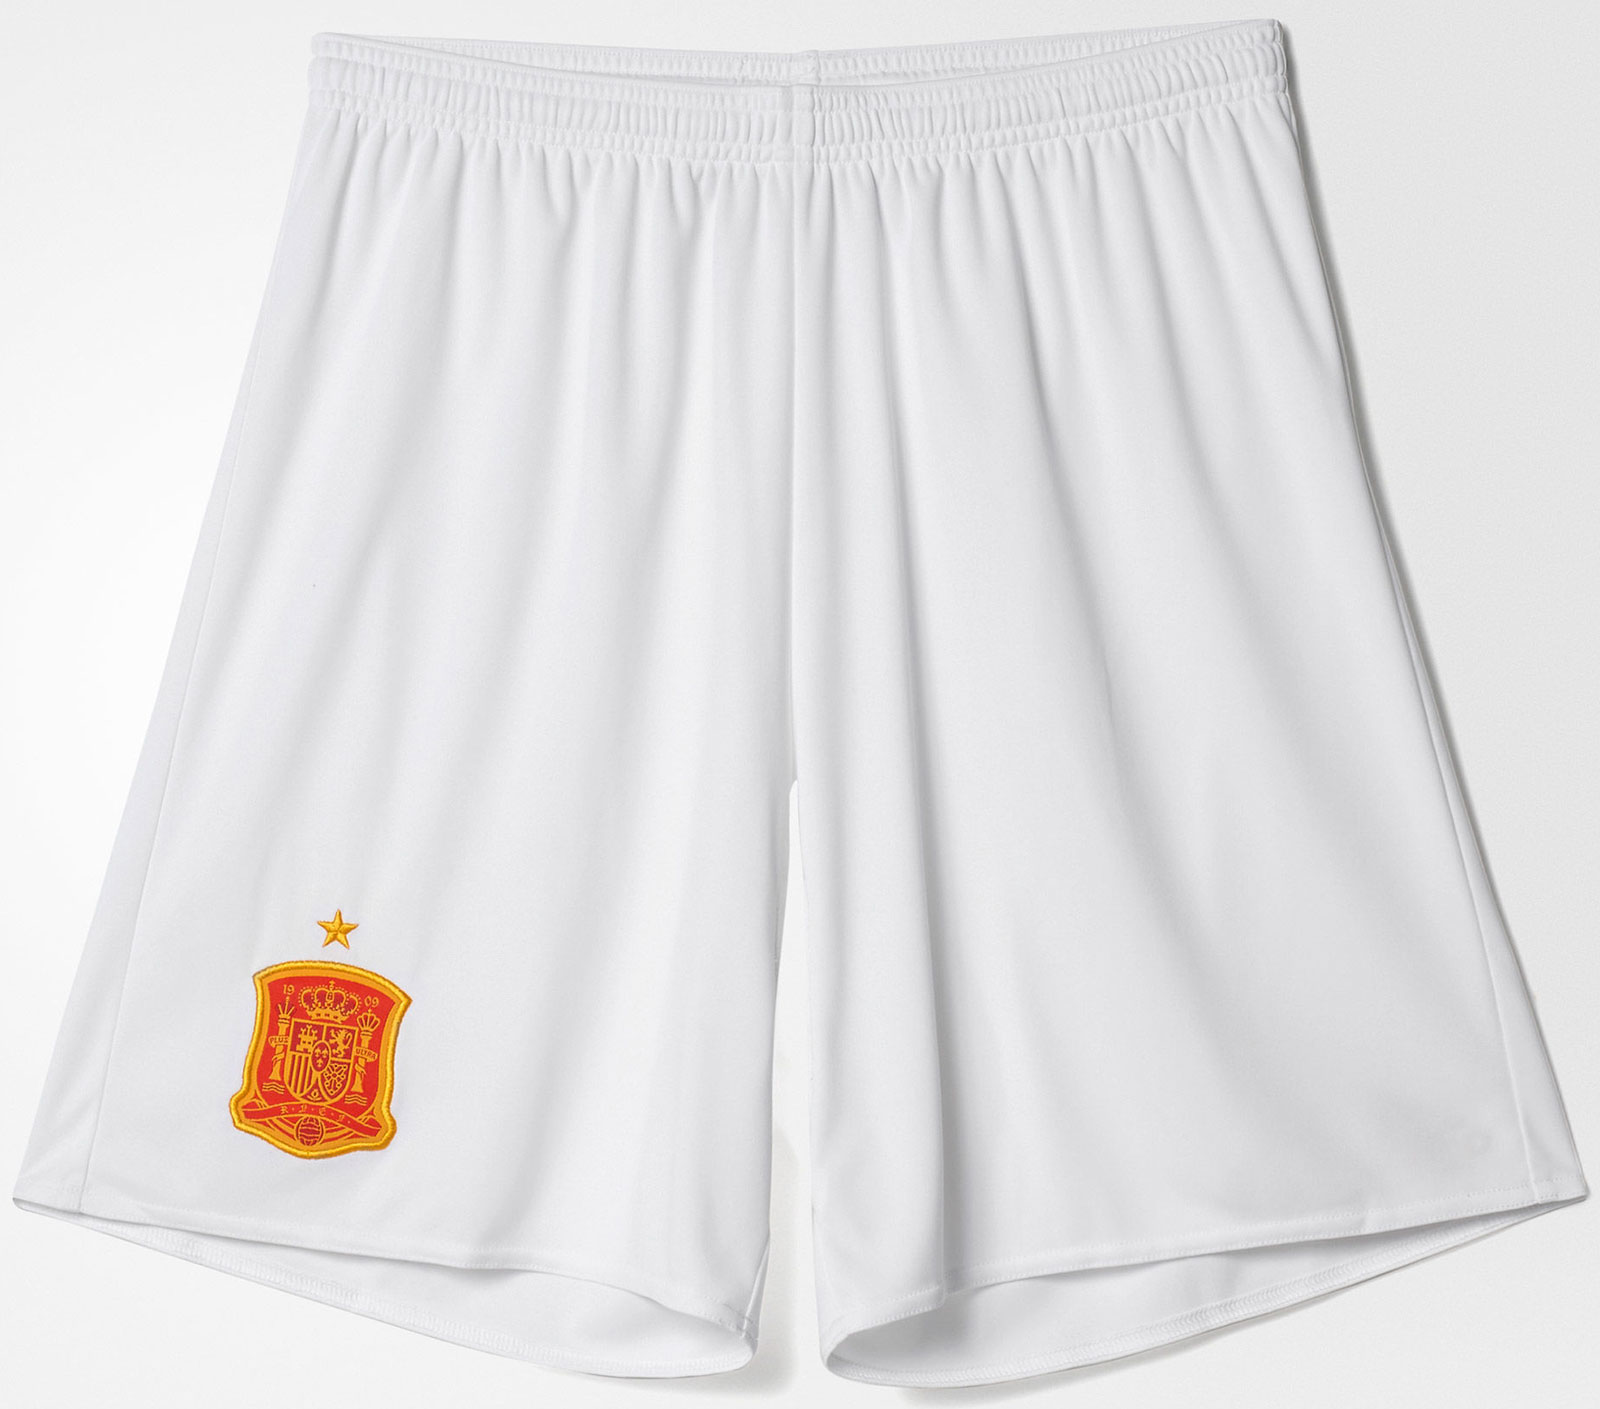 new-spain-kit-shorts-away